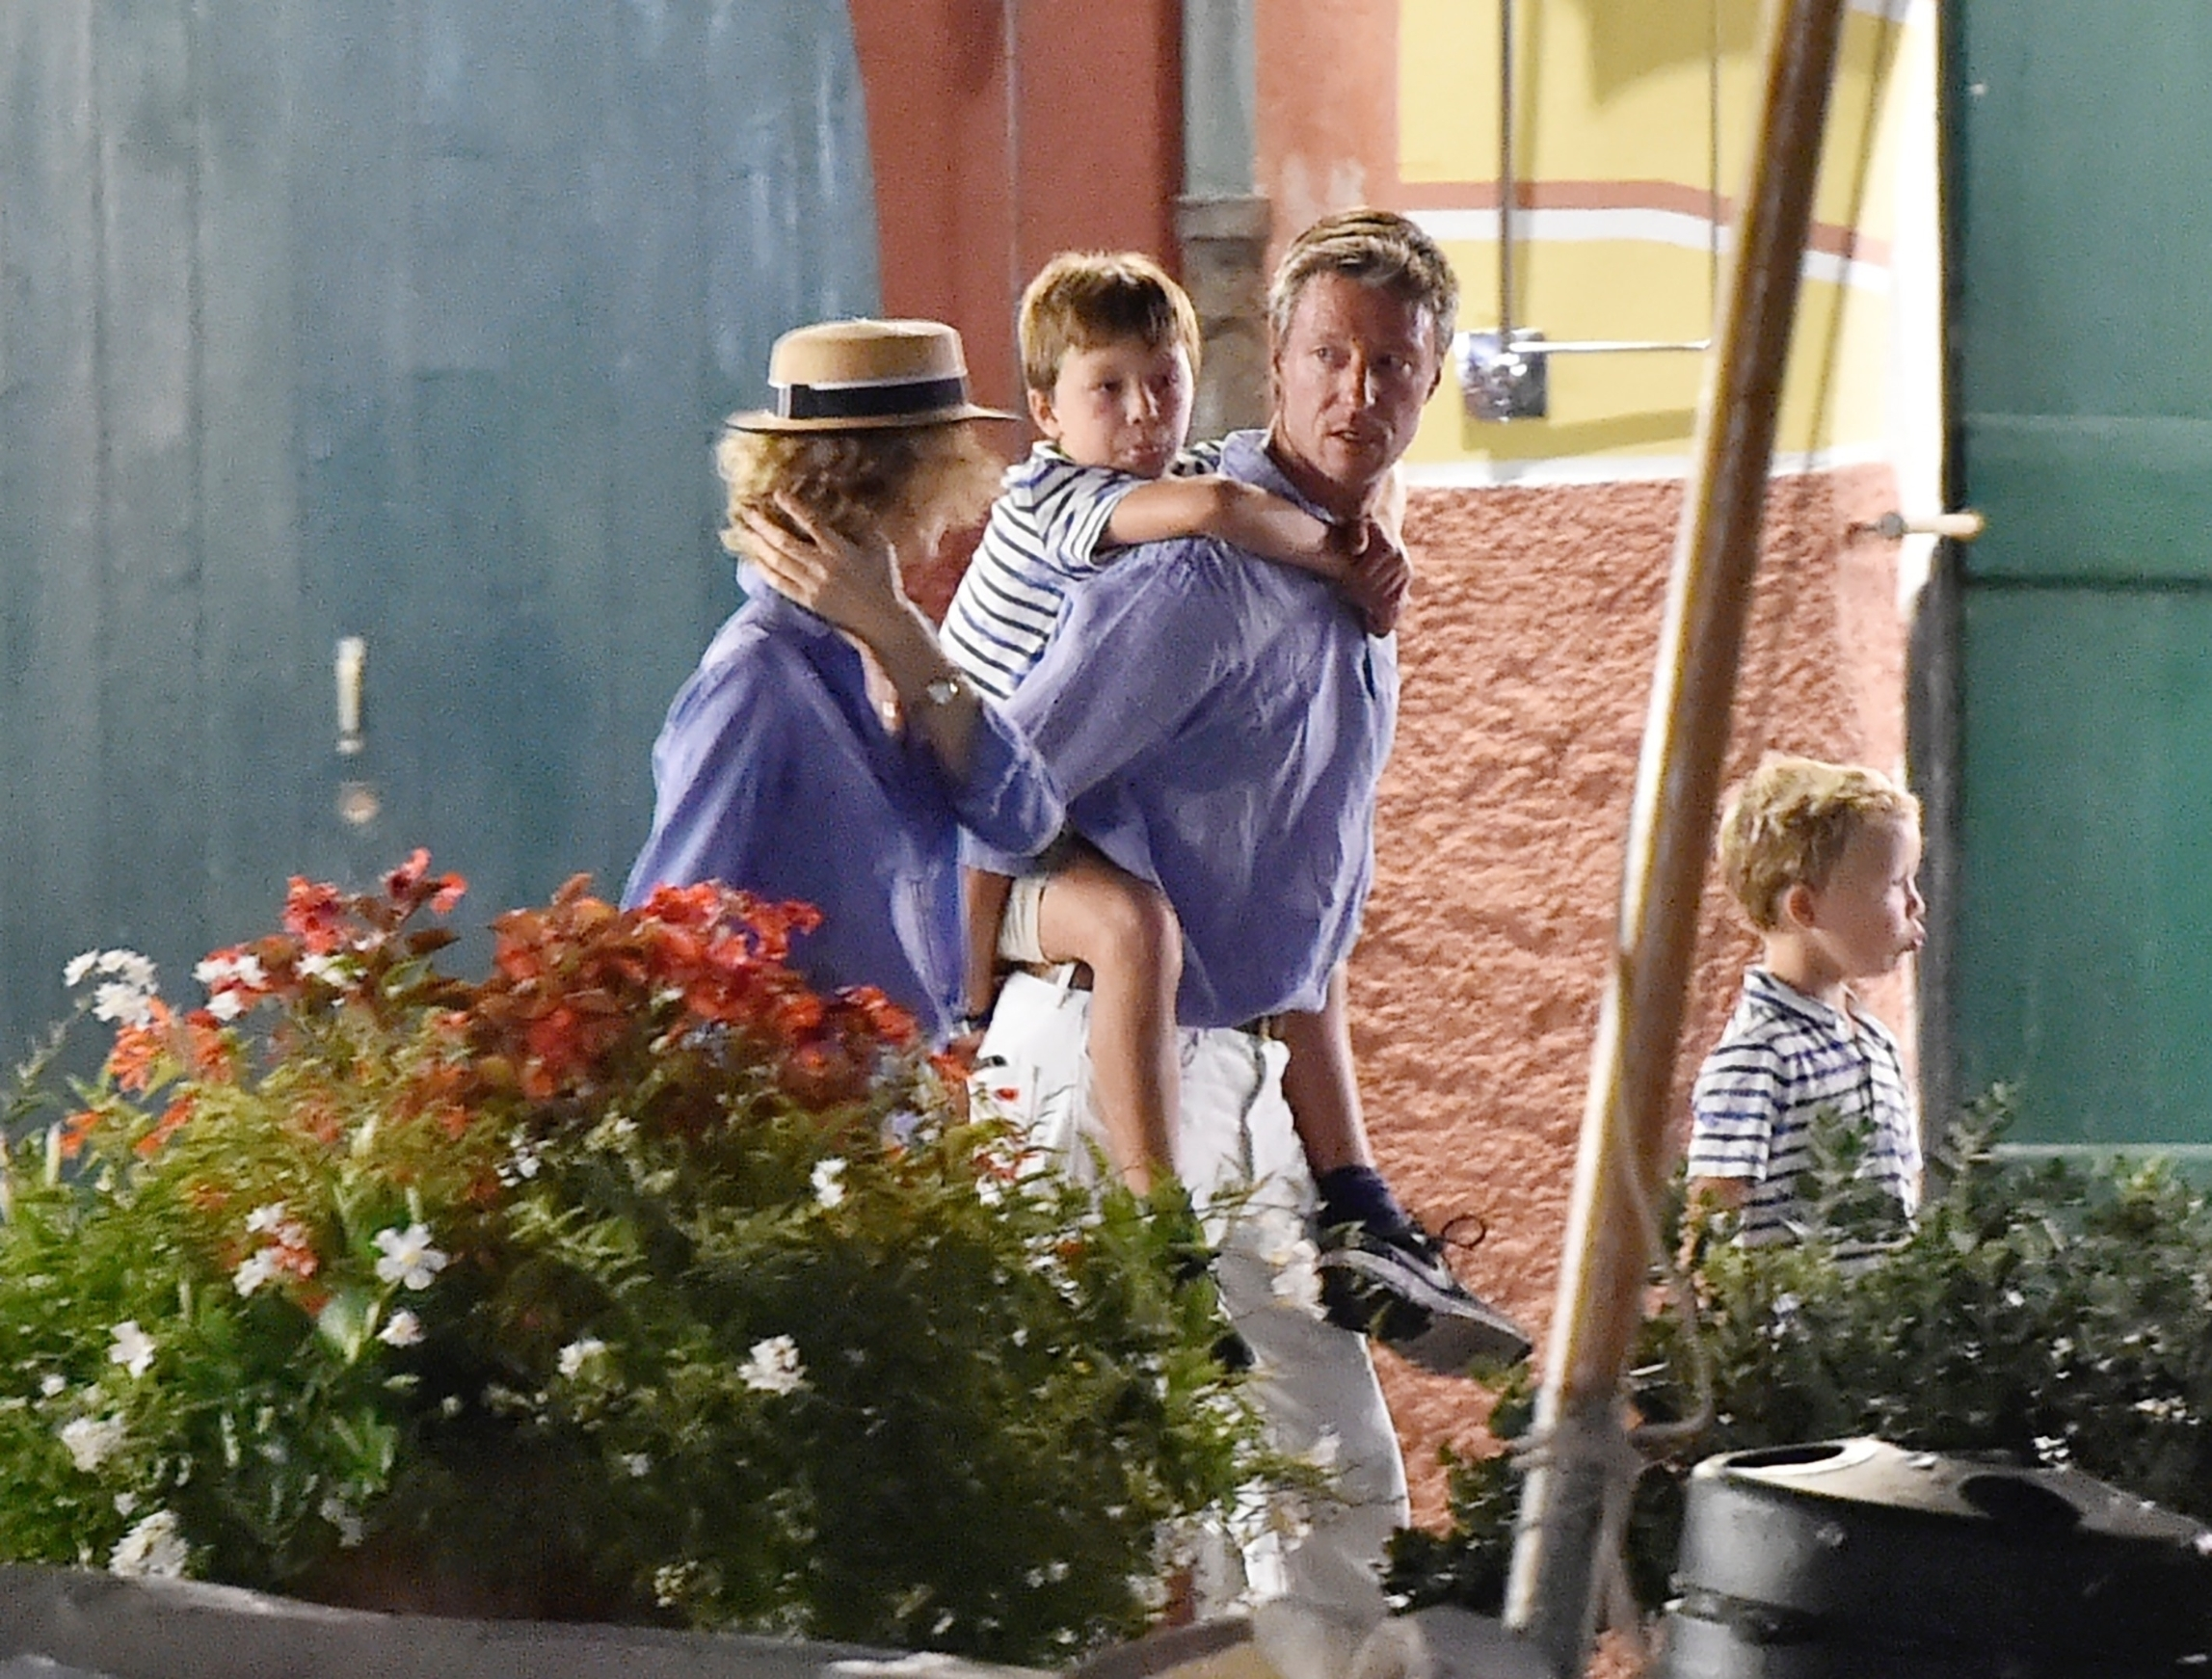 portofino, ITALY  - *EXCLUSIVE*  - Model Eva Herzigova with her husband along with their children on holiday in Portofino  BACKGRID UK 13 SEPTEMBER 2019, Image: 470807330, License: Rights-managed, Restrictions: RIGHTS: NO WEB - WORLDWIDE EXCEPT IN ITALY, Model Release: no, Credit line: Profimedia, Backgrid UK